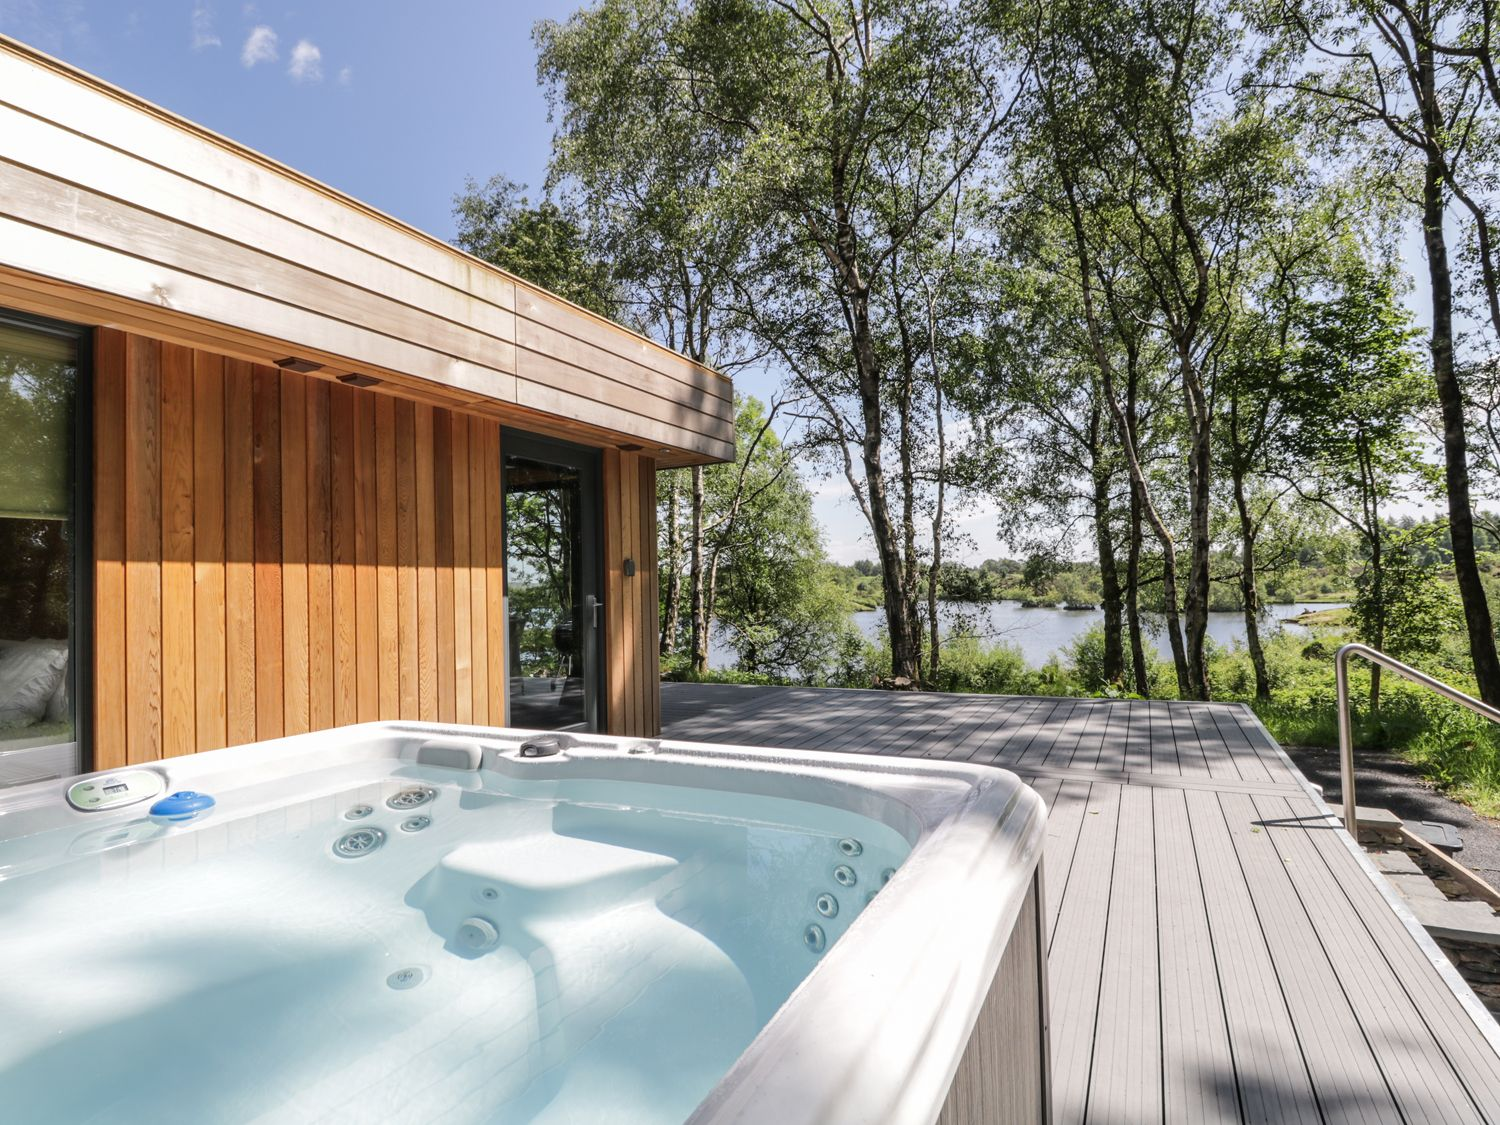 wonderful selection of lodges in Cumbria most of which have their own private hot tub